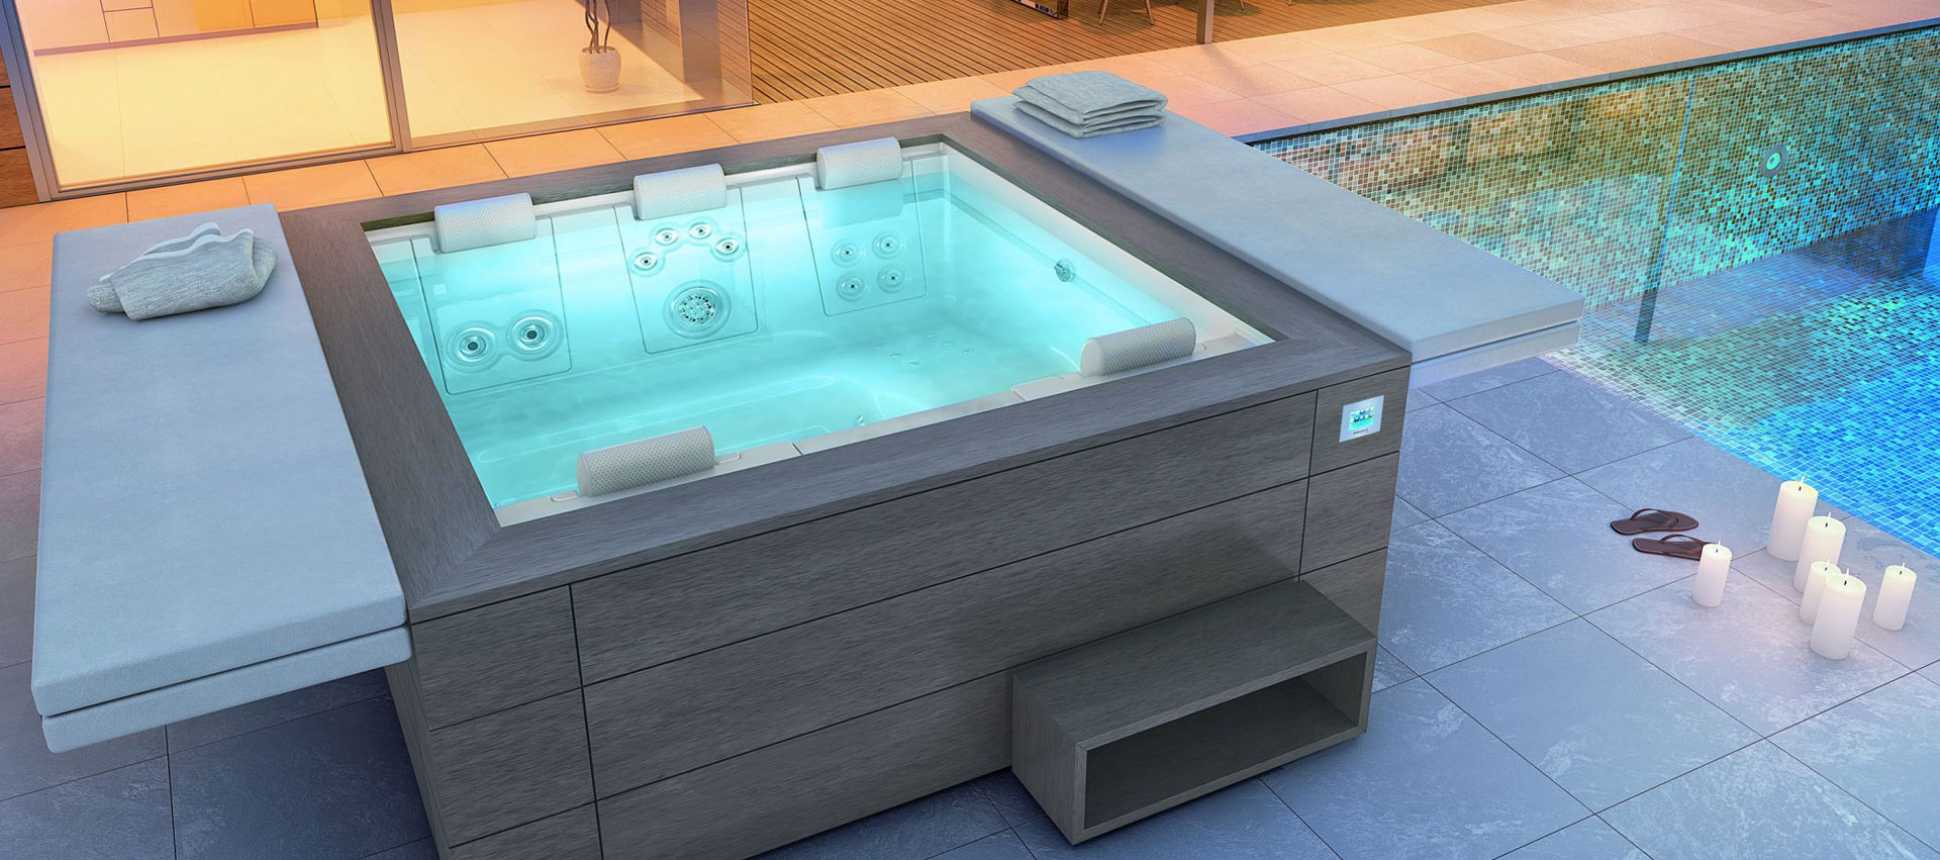 Wonderful Portable Whirlpool Gallery - Bathtub for Bathroom Ideas ...